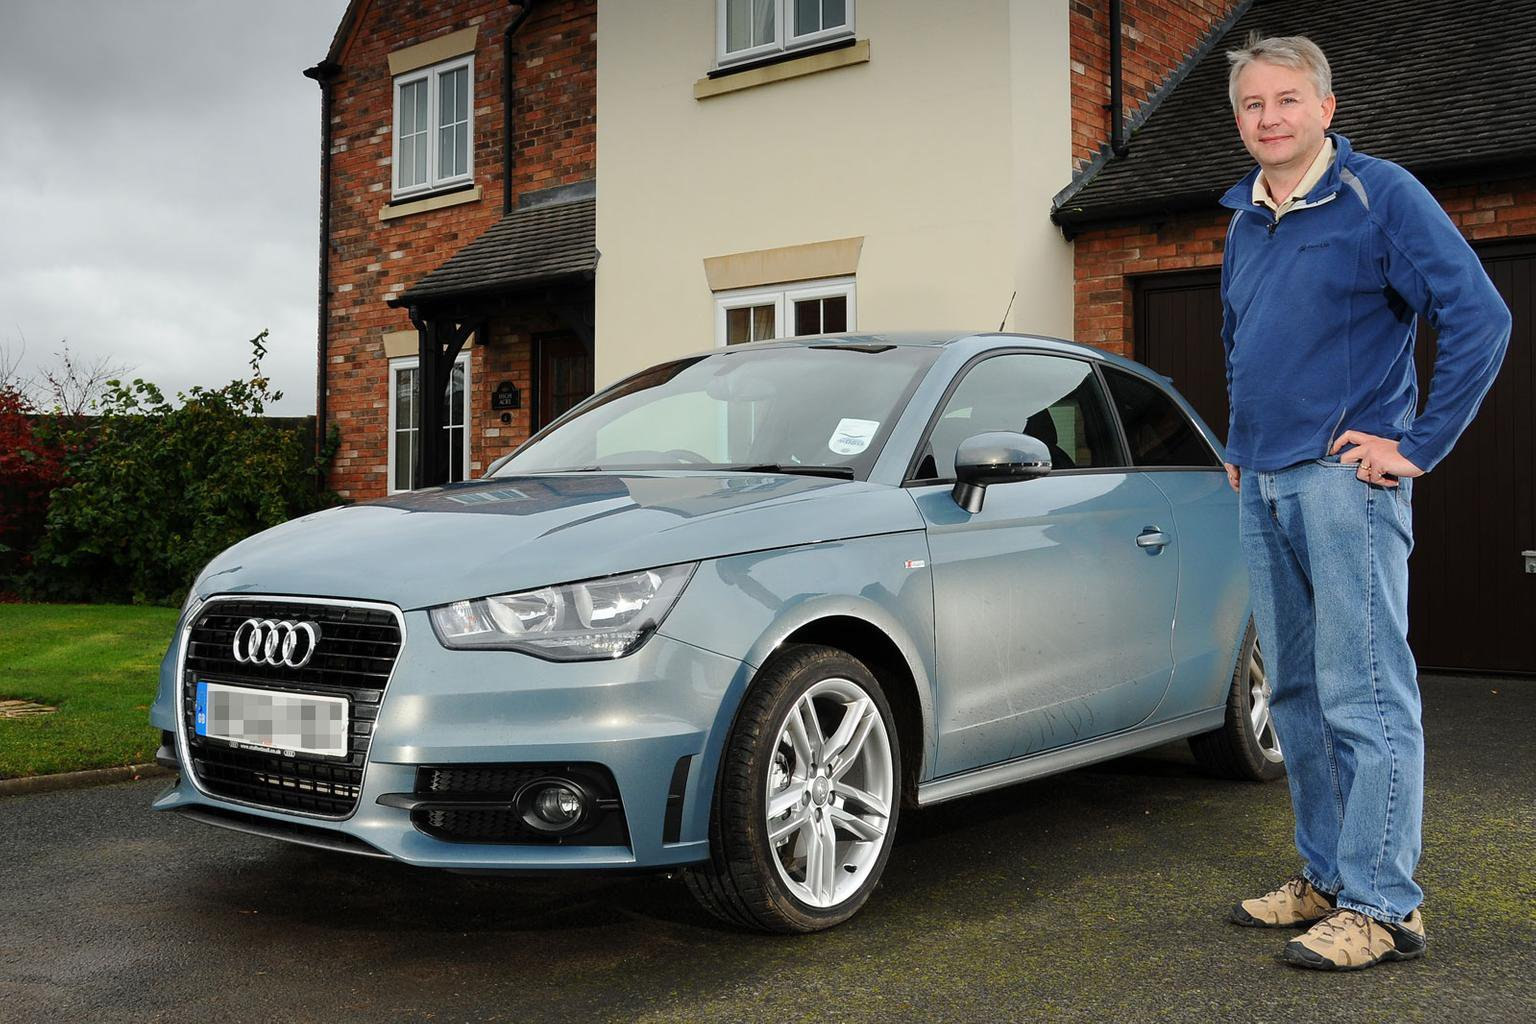 Audi A1 doesn't match the brochure